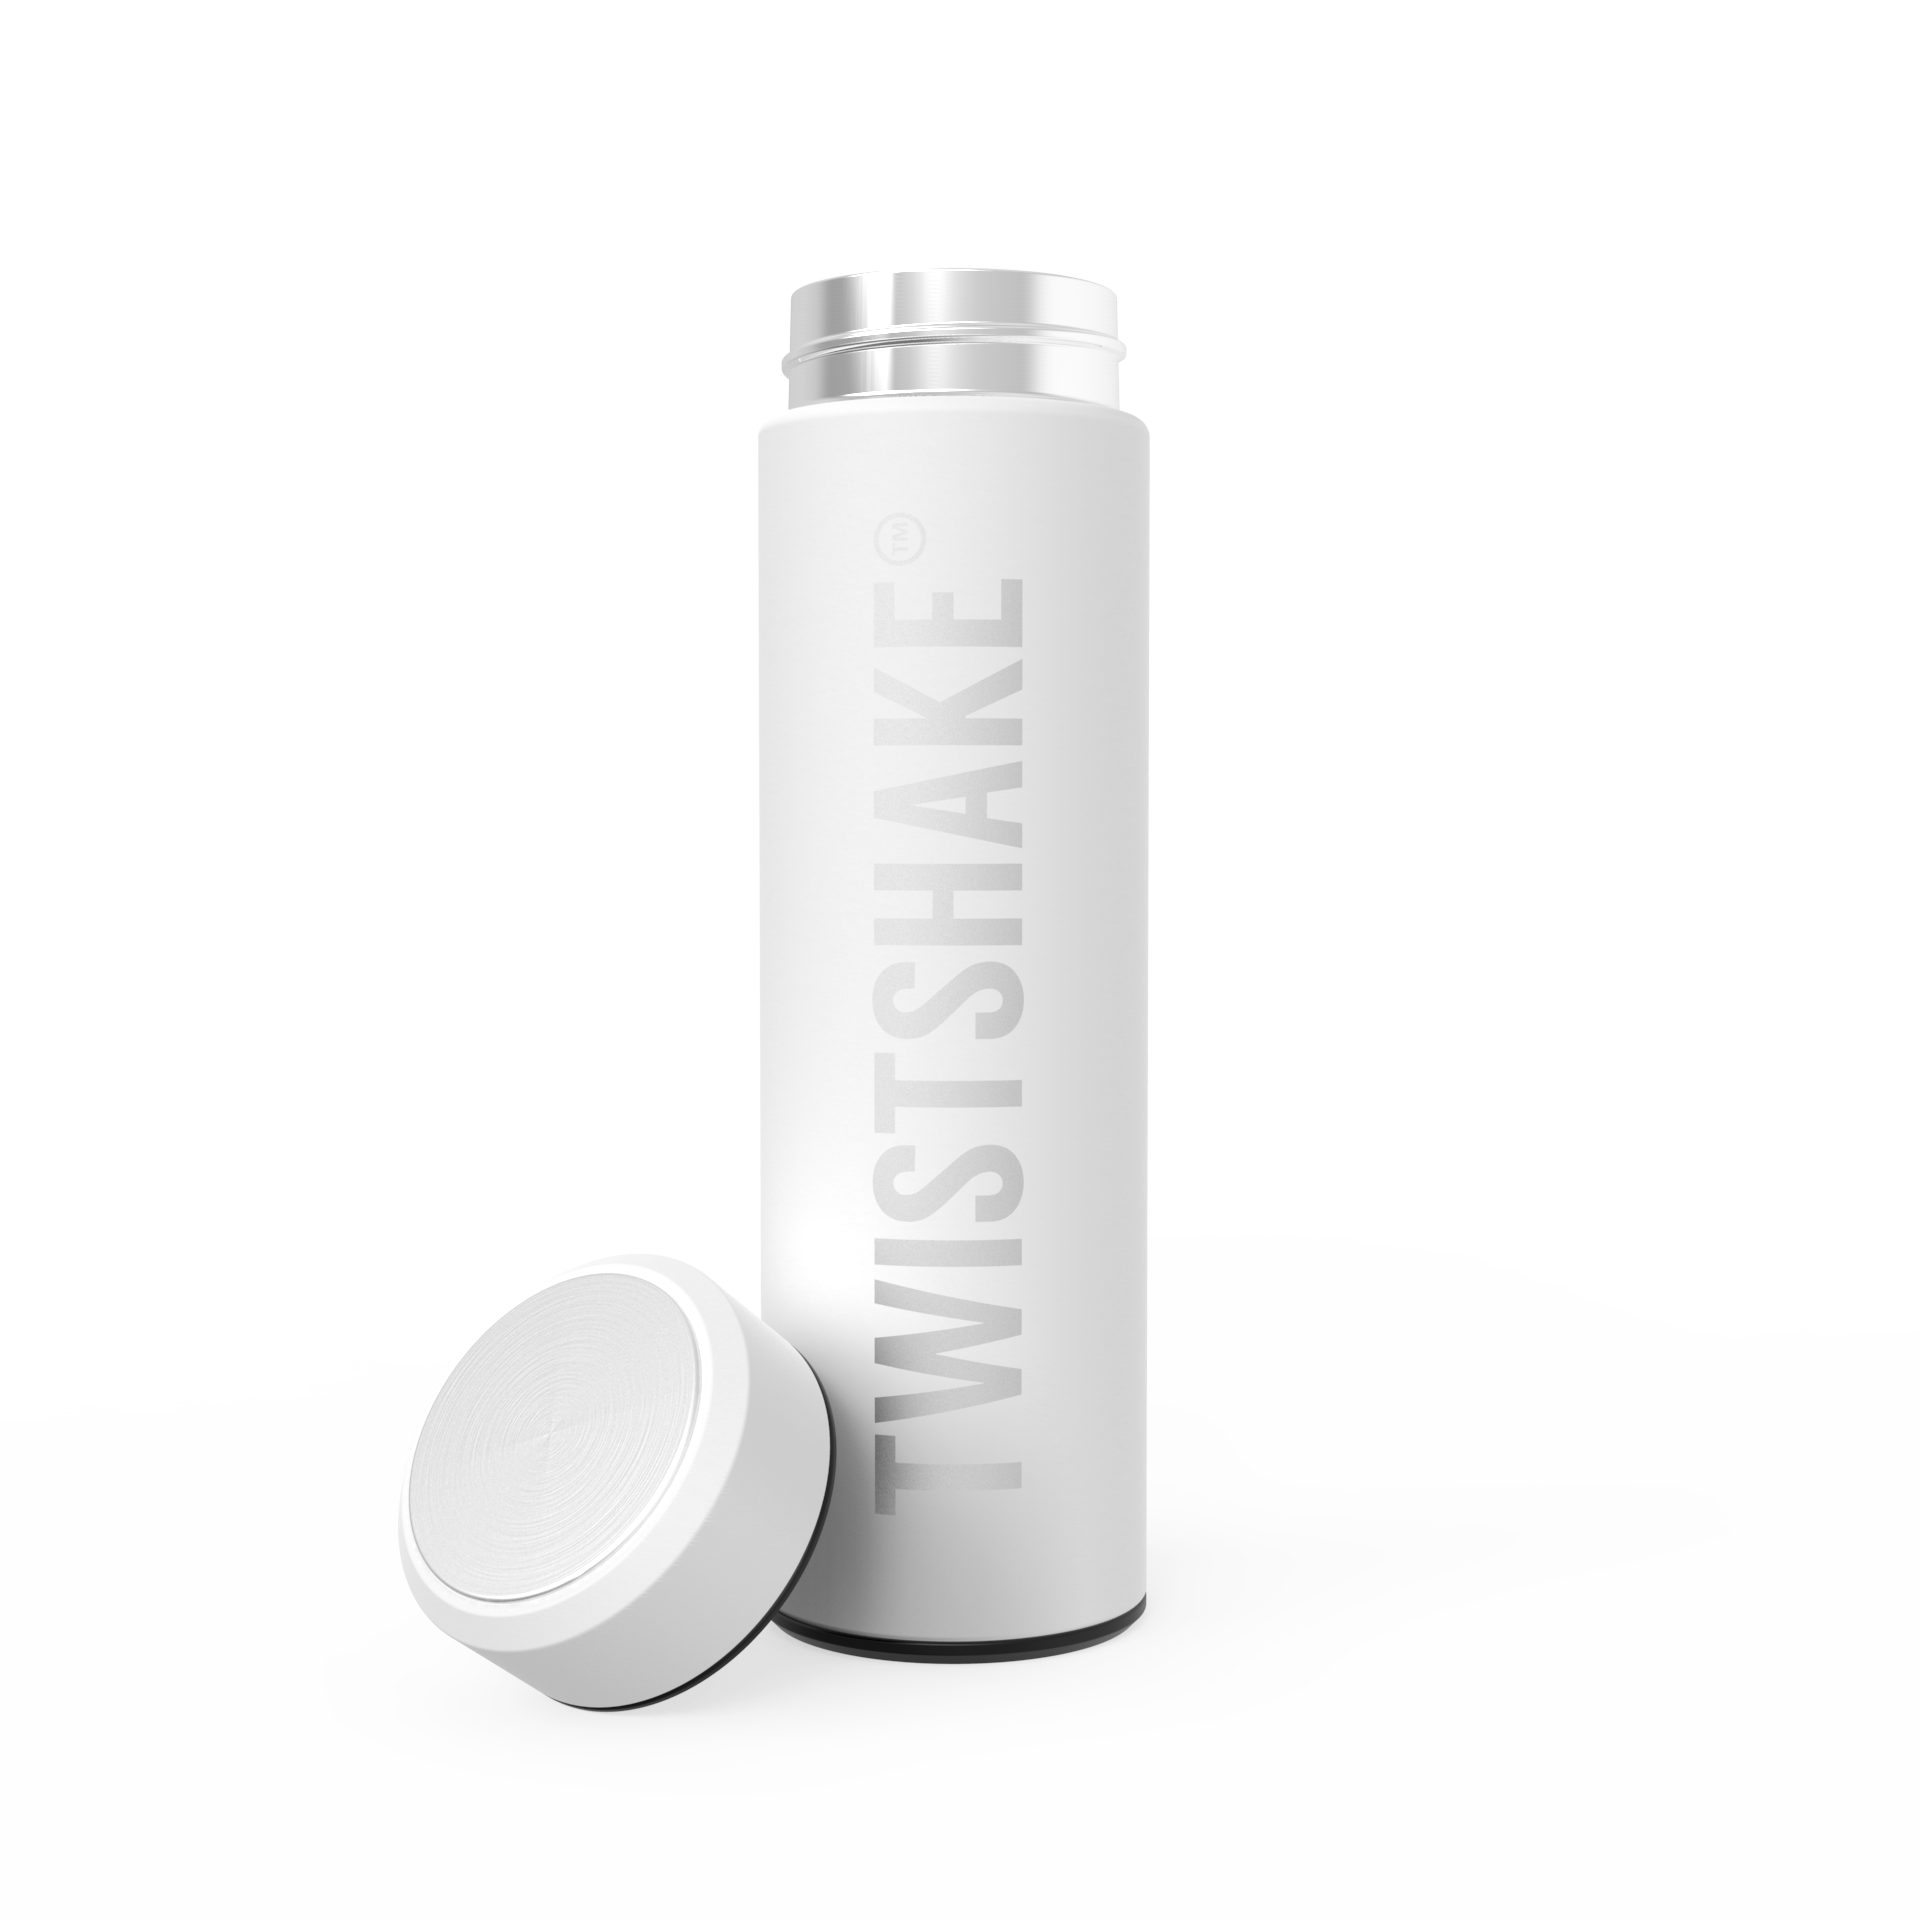 Twistshake Insulated Hot/Cold Bottle